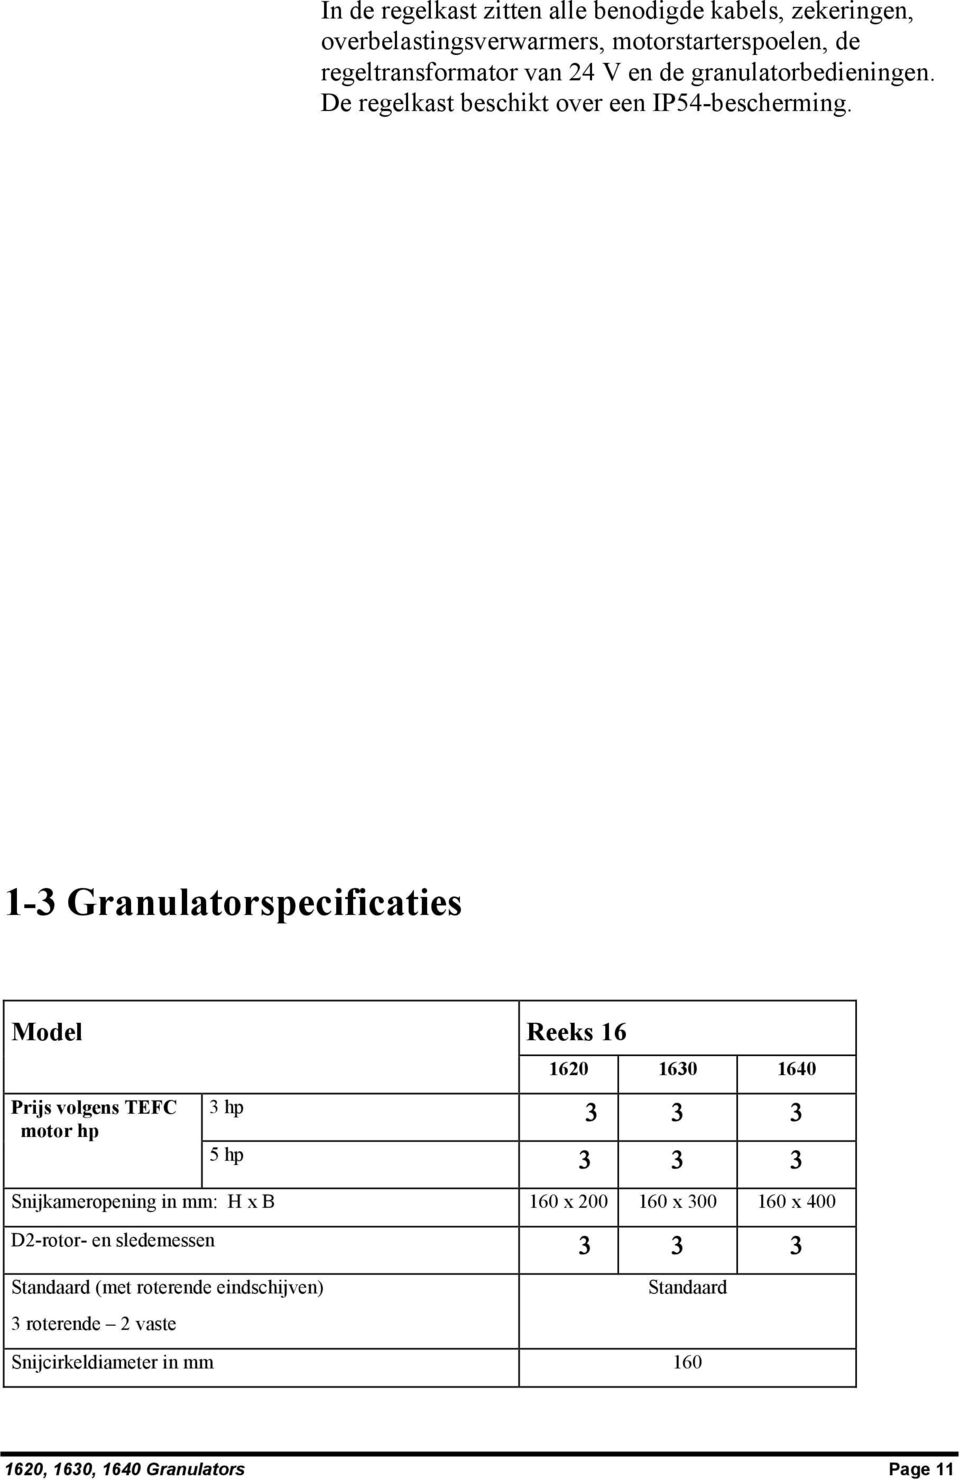 1-3 Granulatorspecificaties Model Reeks 16 Prijs volgens TEFC motor hp 1620 1630 1640 3 hp 3 3 3 5 hp 3 3 3 Snijkameropening in mm: H x